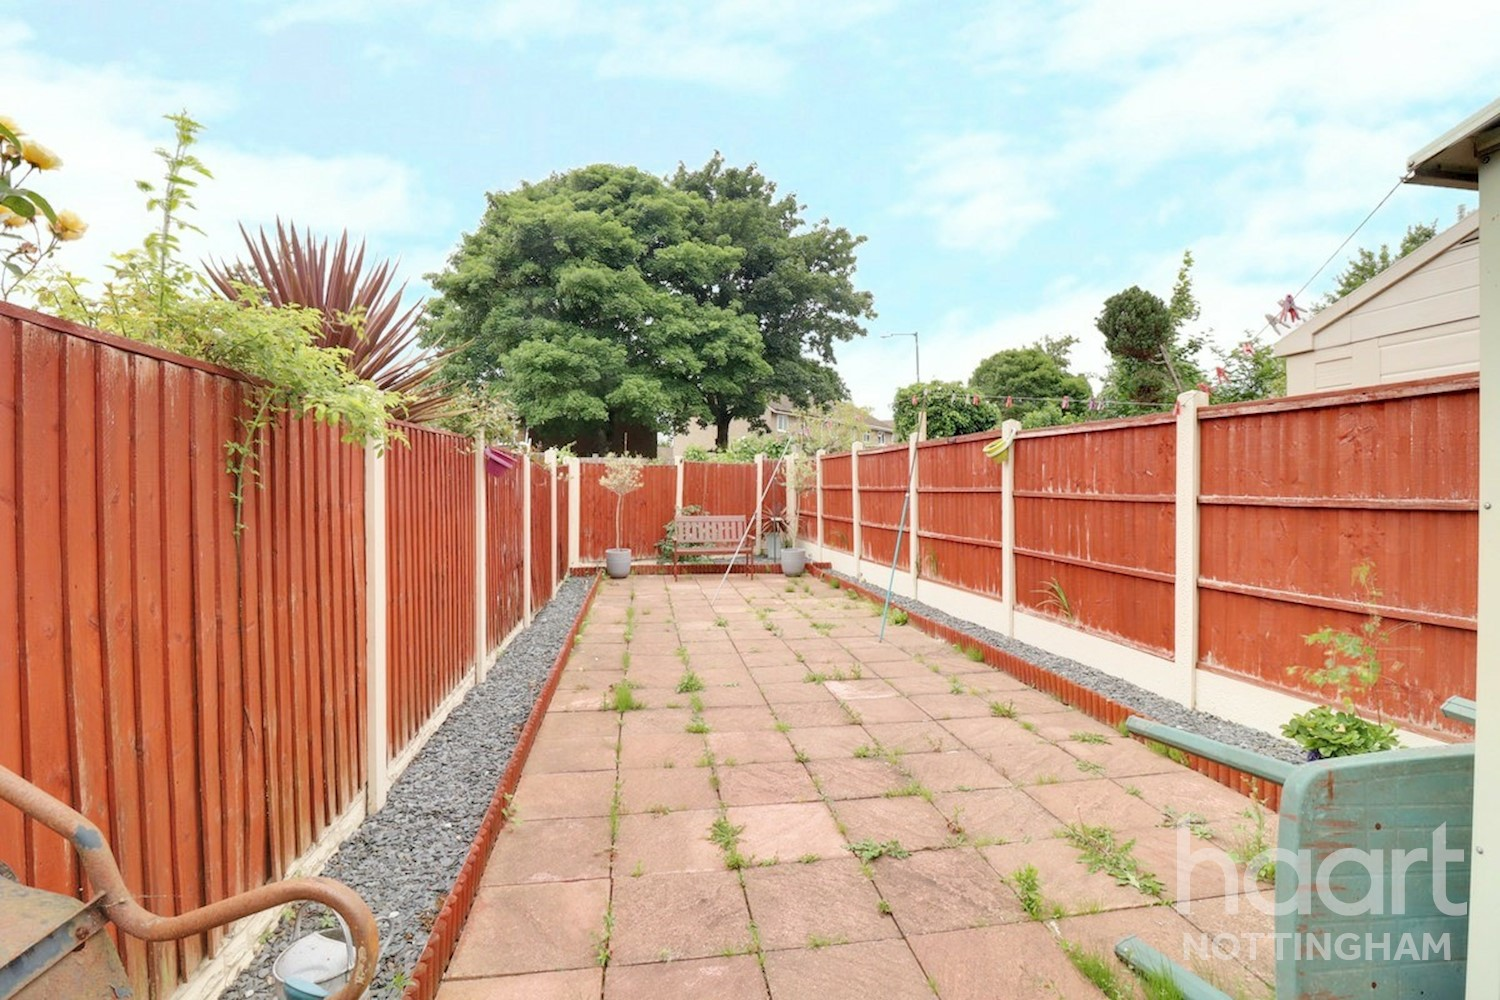 2 bedroom Semi-Detached House | Rock Street, NOTTINGHAM | £115,000 | haart